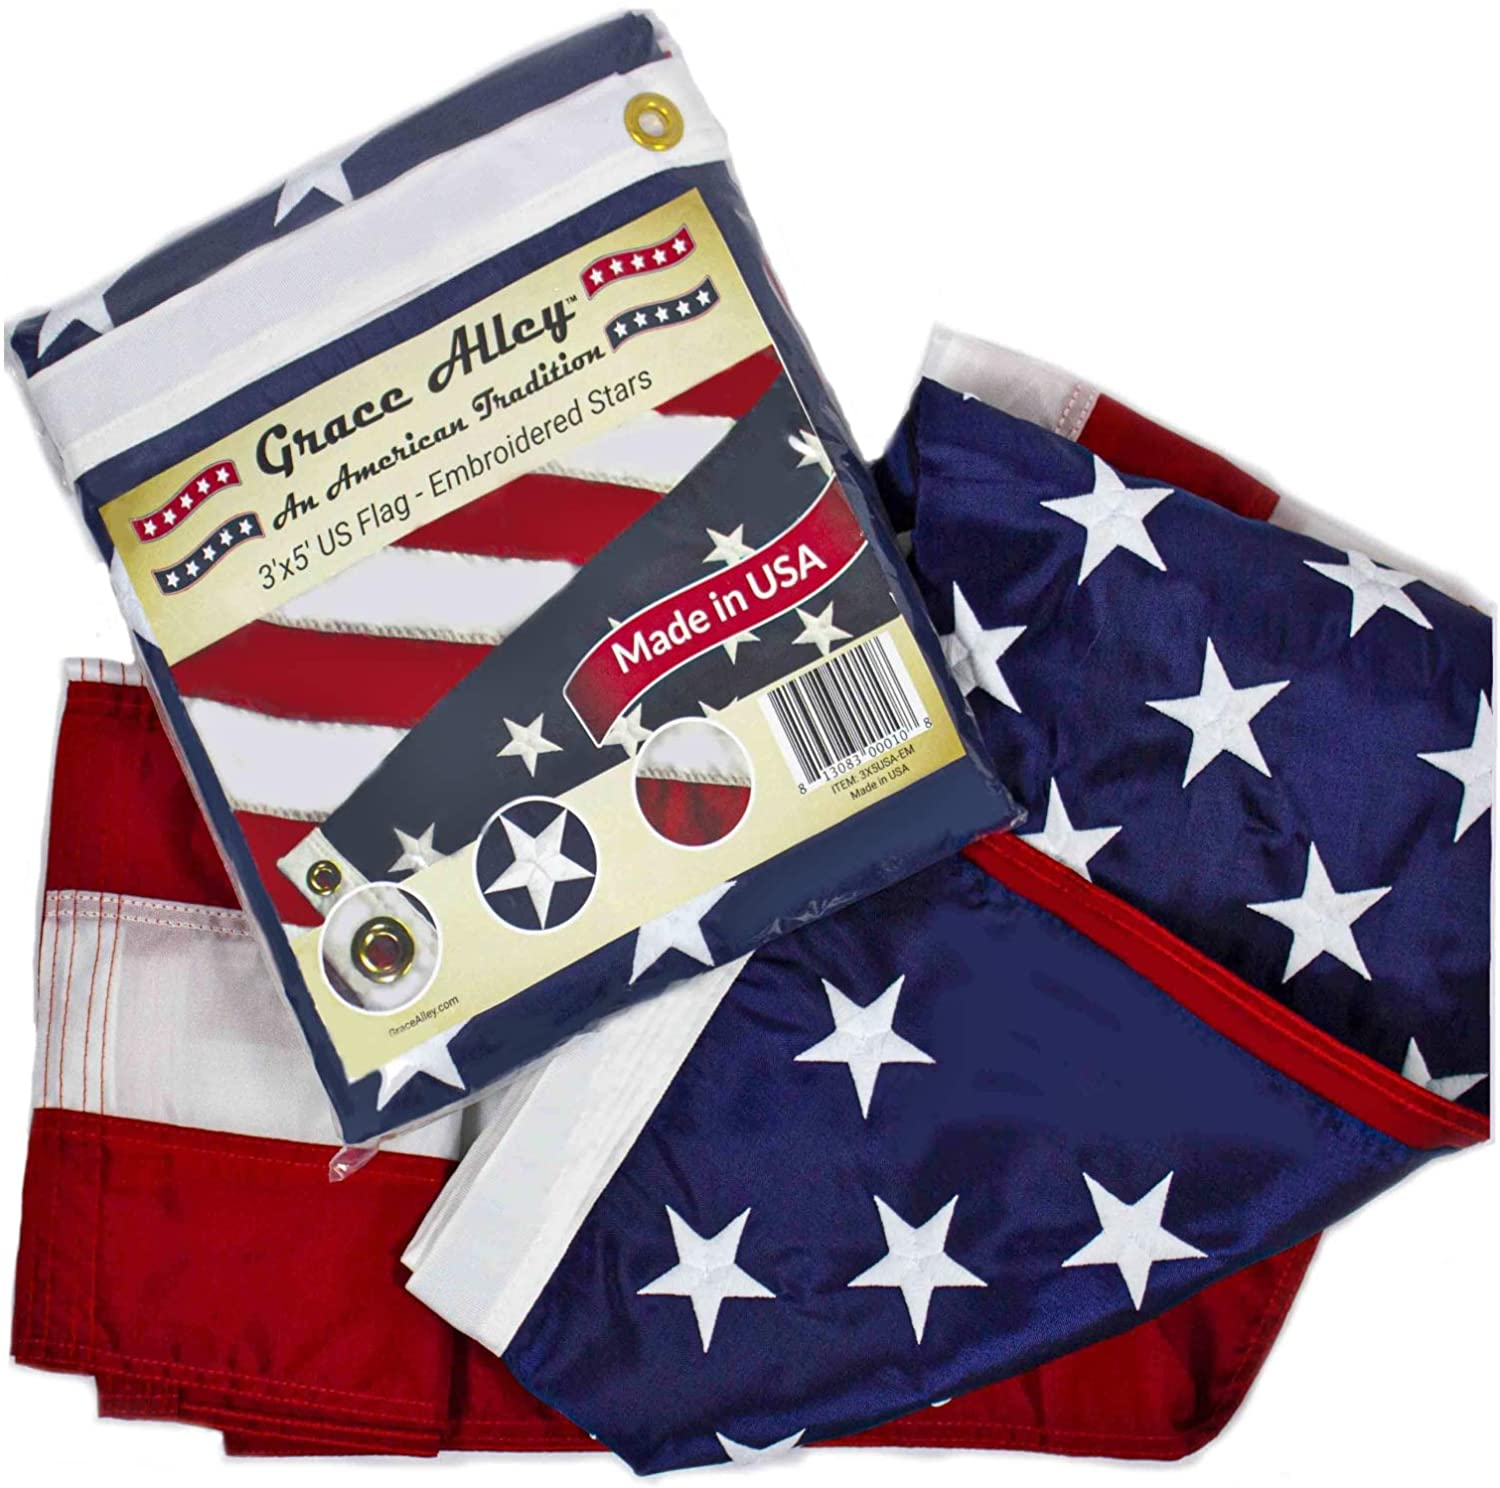 Grace Alley American Flag: 3x5 FT US Flag - 100% Made in USA. Embroidered Stars, Sewn Stripes and Brass Grommets. Fade Resistant, Heavy Duty, Long Lasting Nylon for Outdoor Durability. : Garden & Outdoor